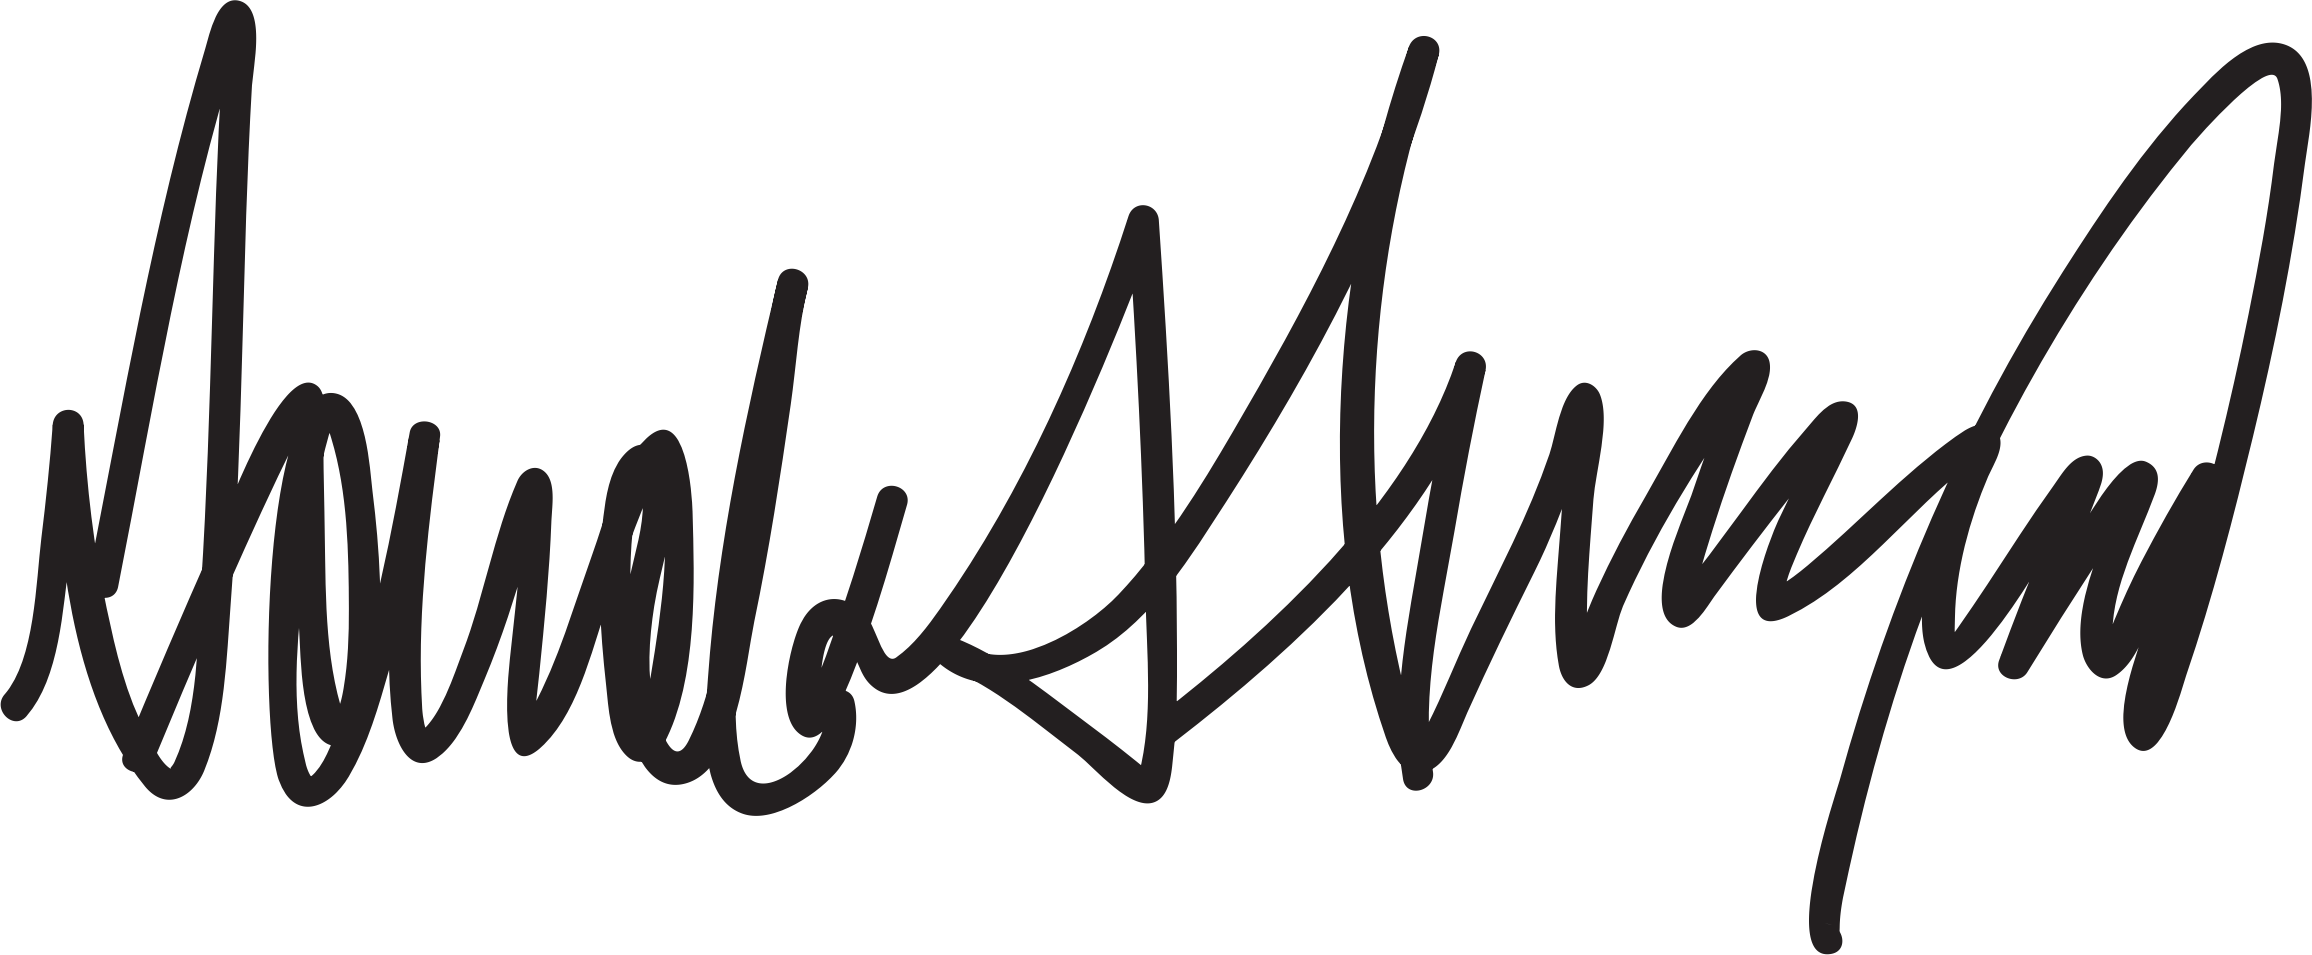 Donald Trump Signature by wallpapergirl